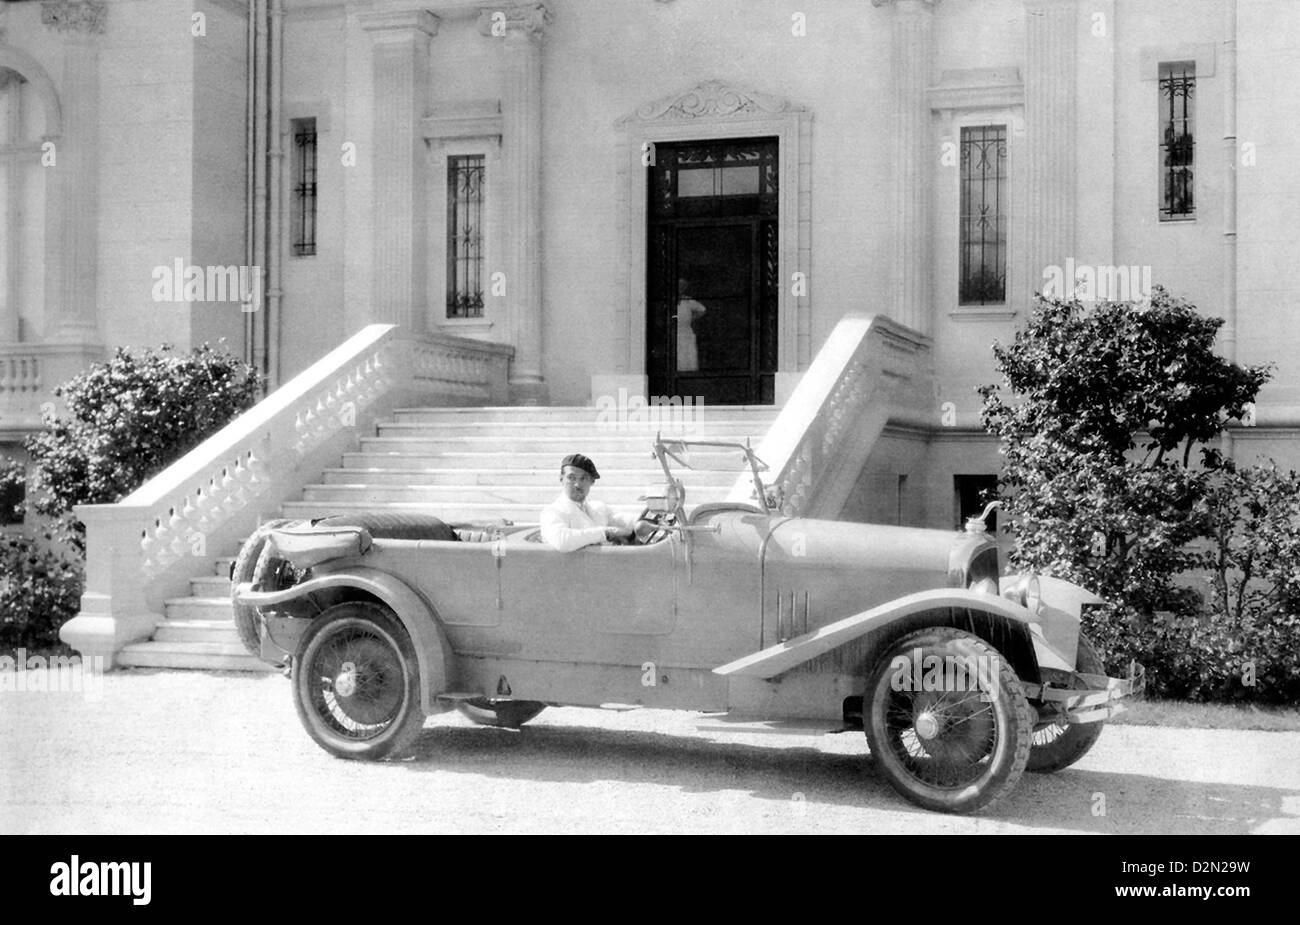 Voisin Car Stock Photos & Voisin Car Stock Images - Alamy